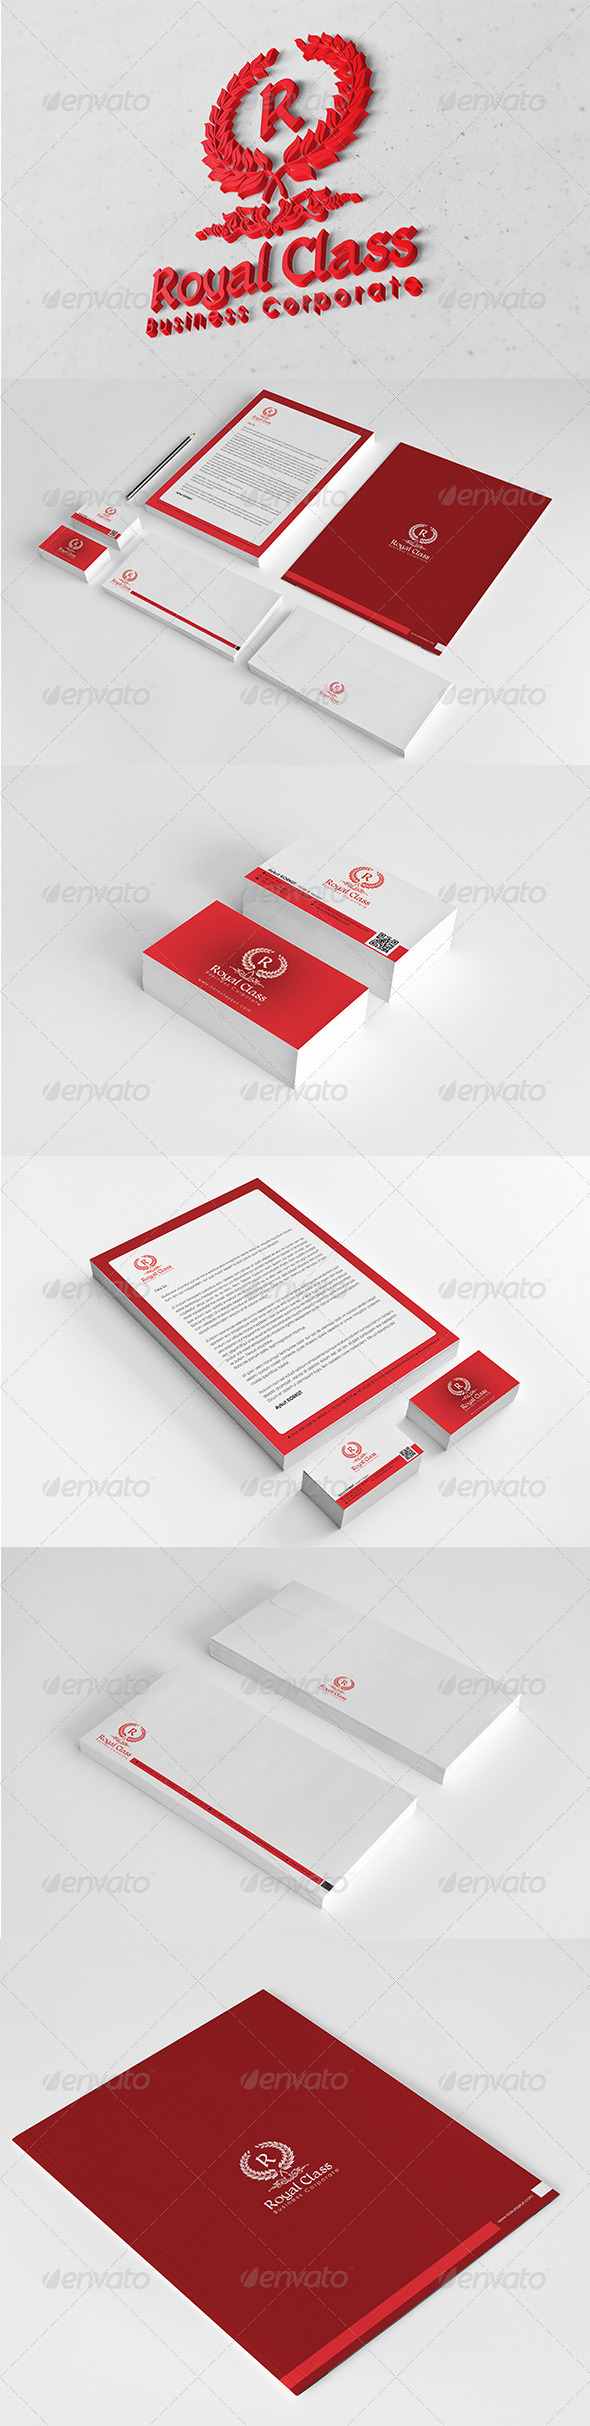 GraphicRiver Royal Class Corporate Identity Package 6123938